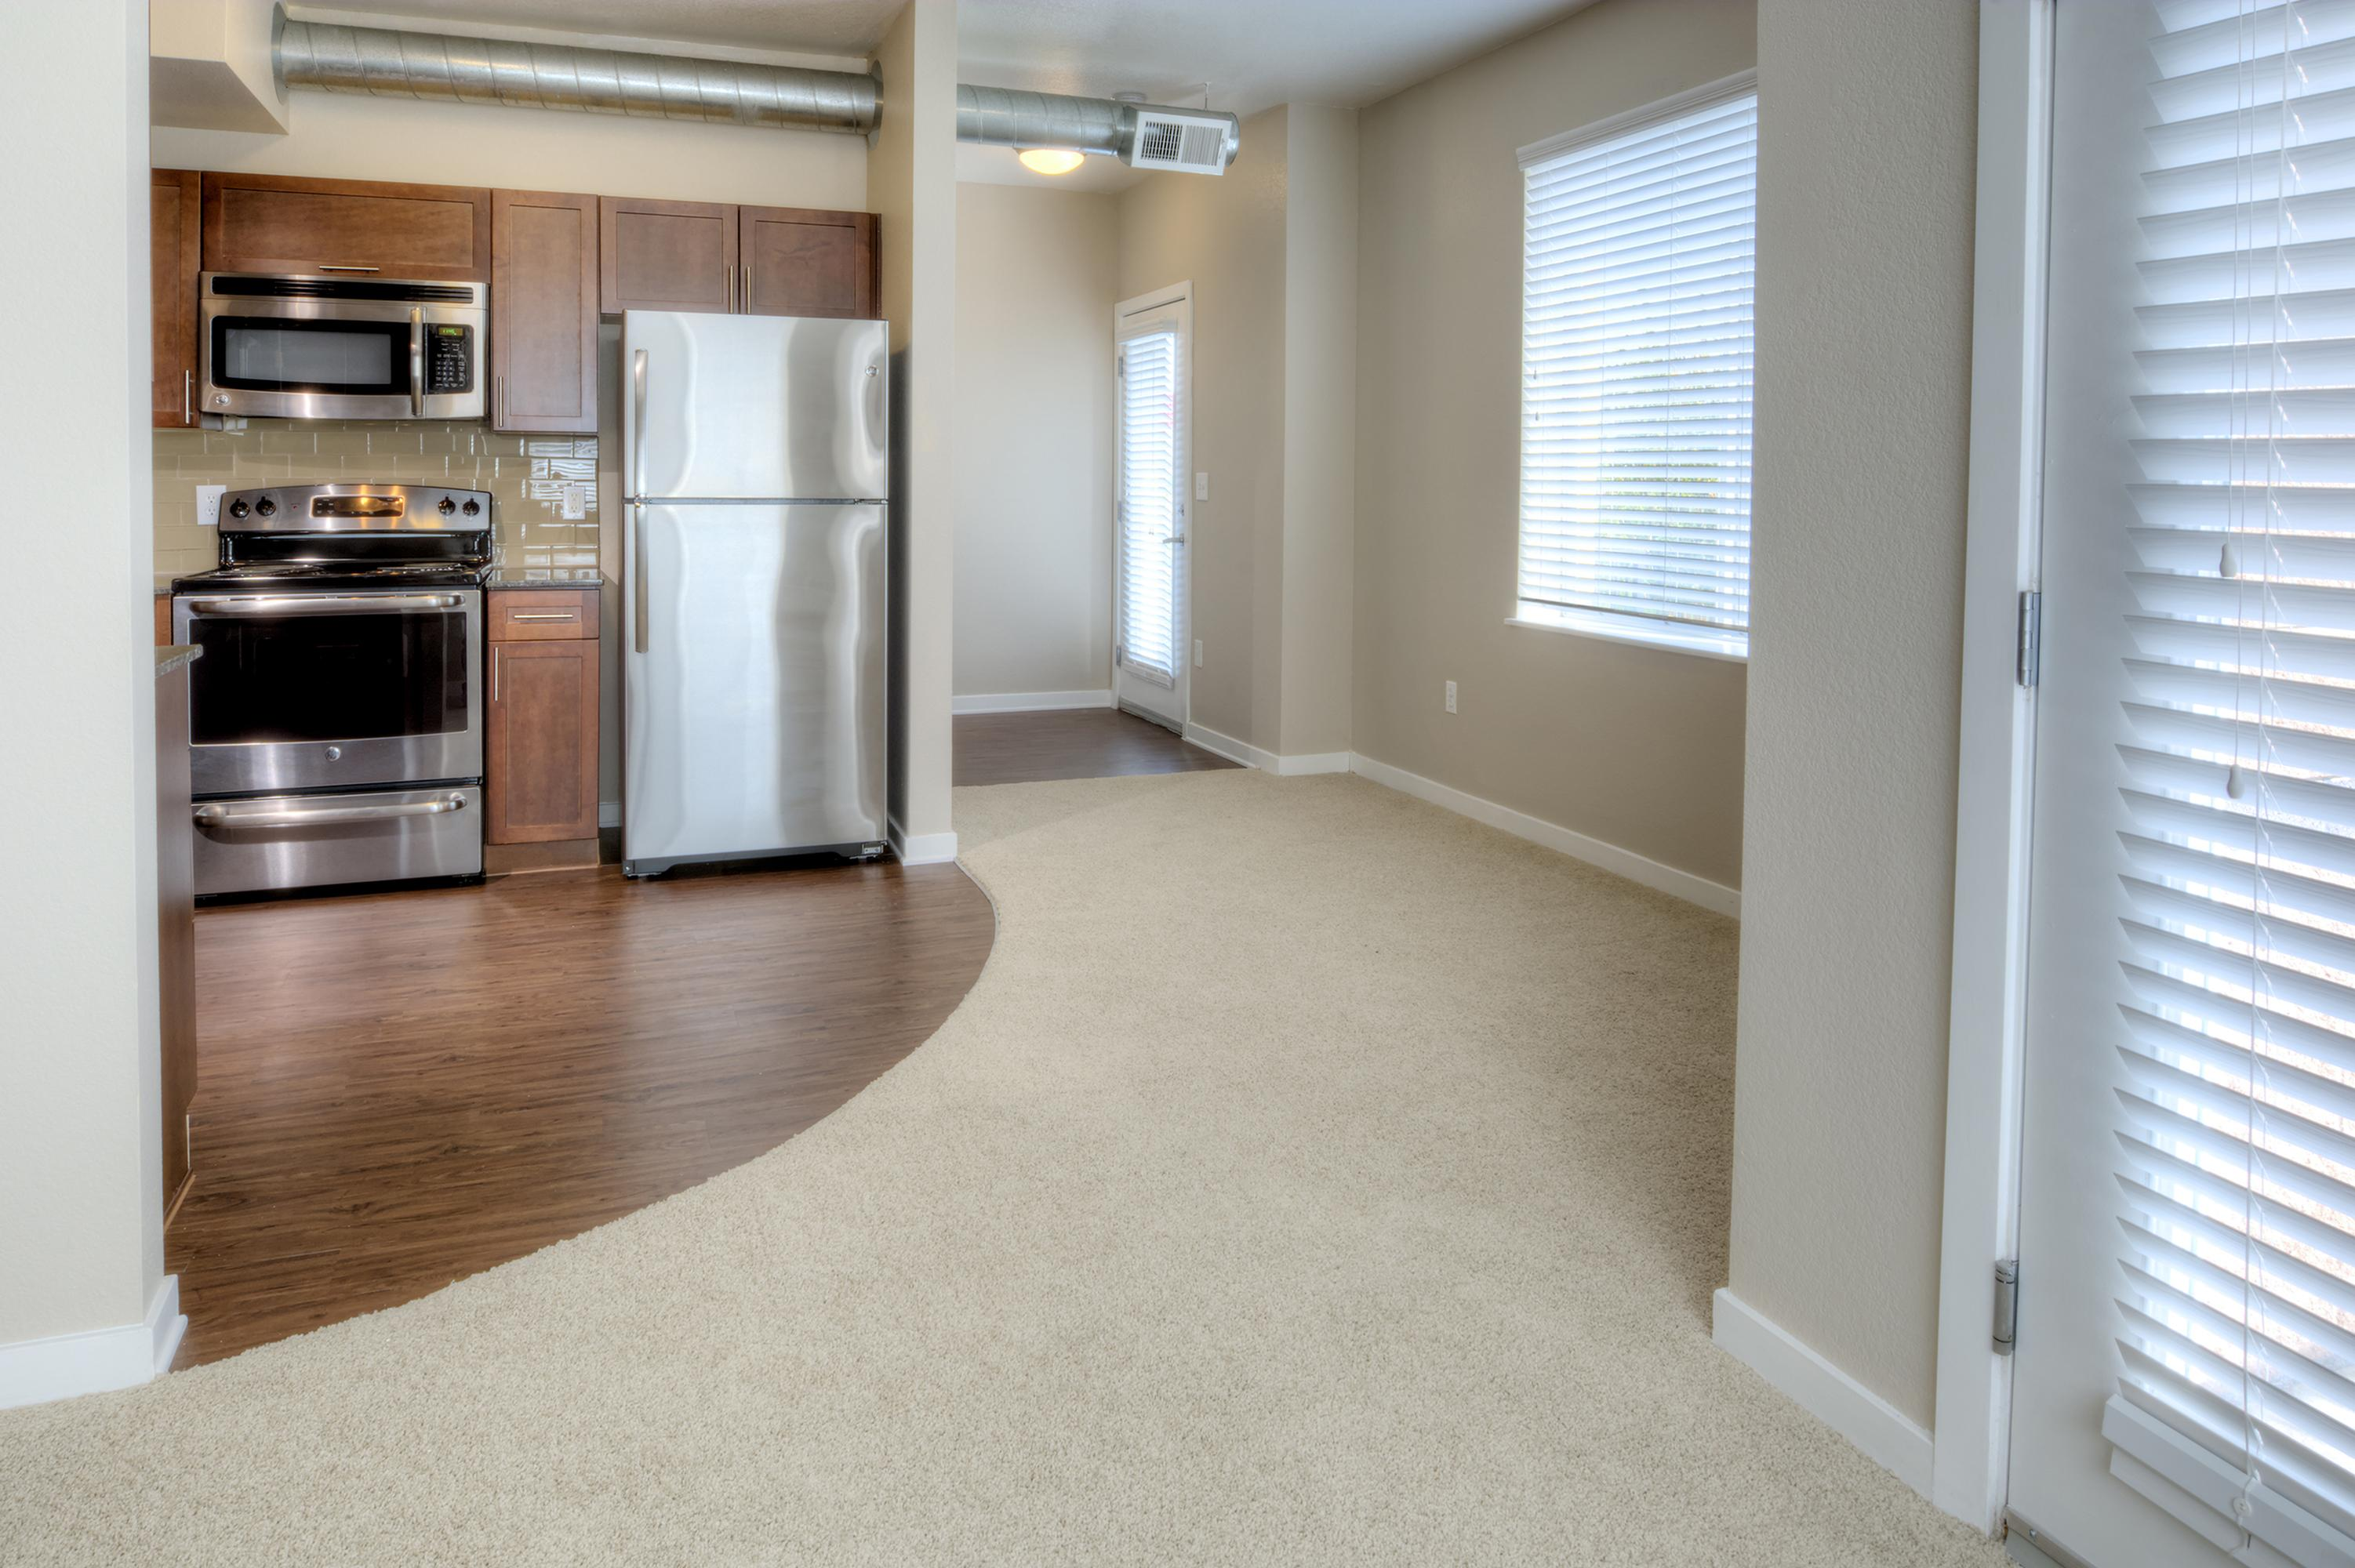 Uptown Broadway Apartments image 3